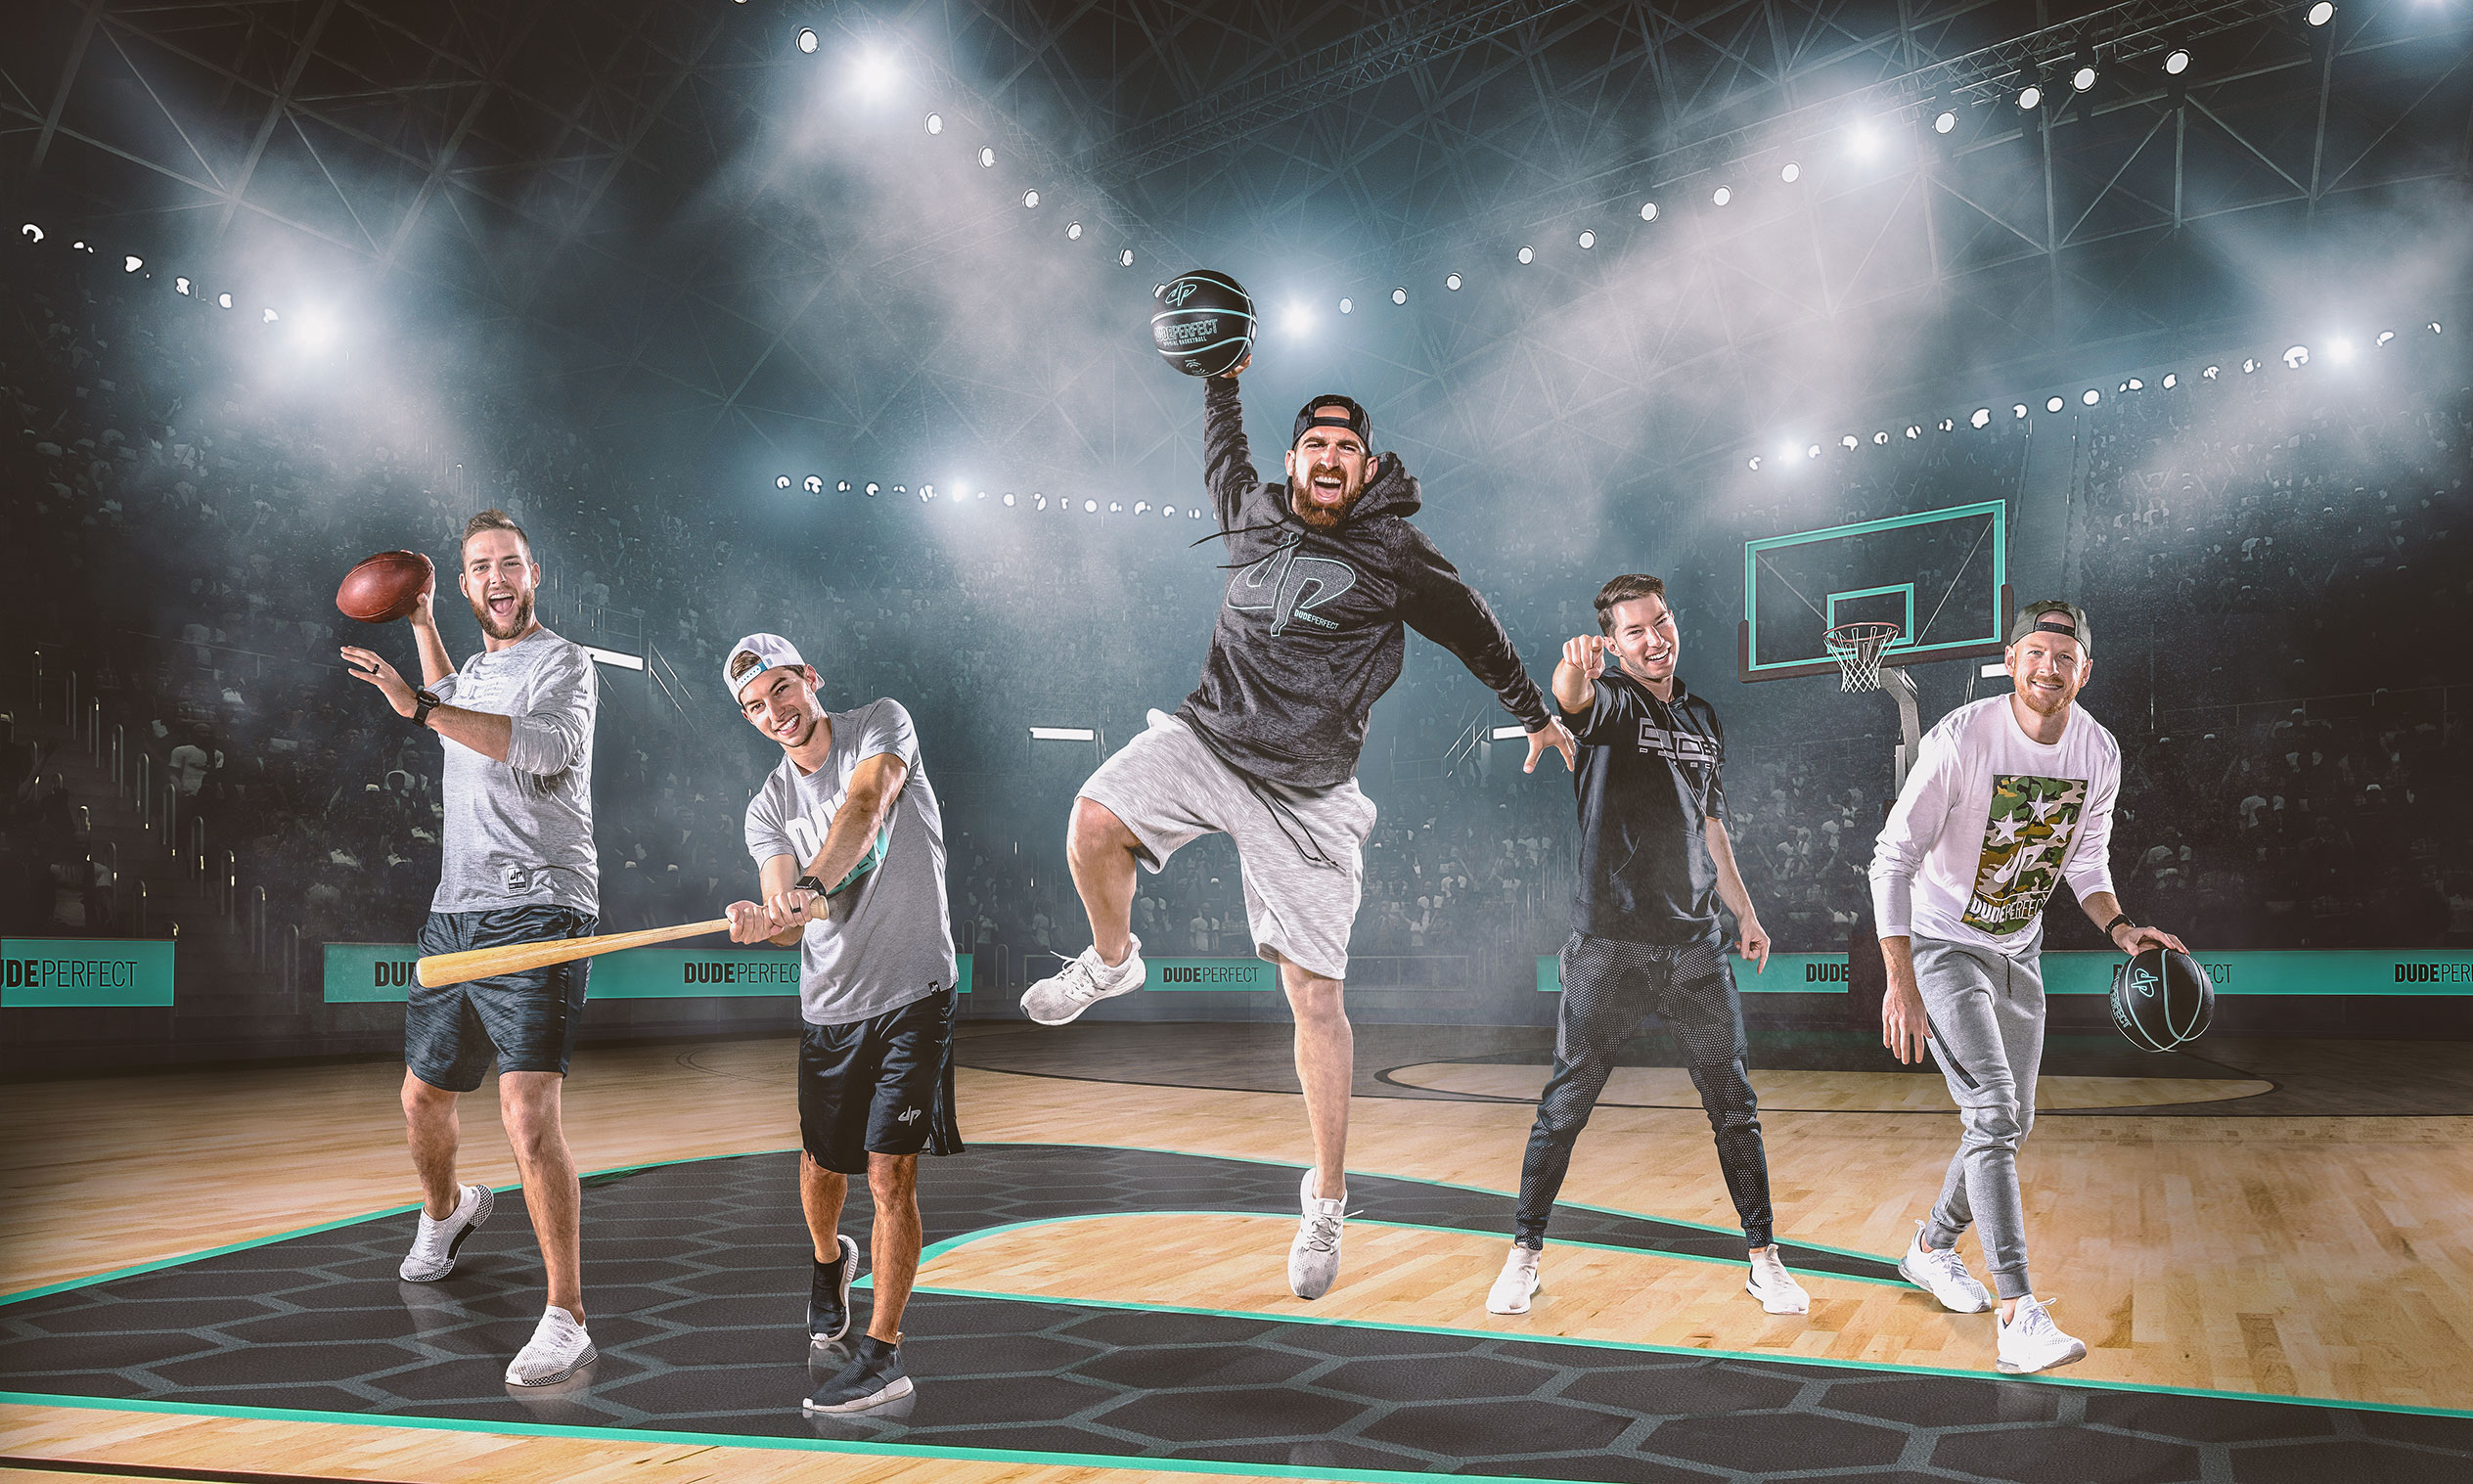 Dude Perfect Net Worth, Career, and Relationship Status